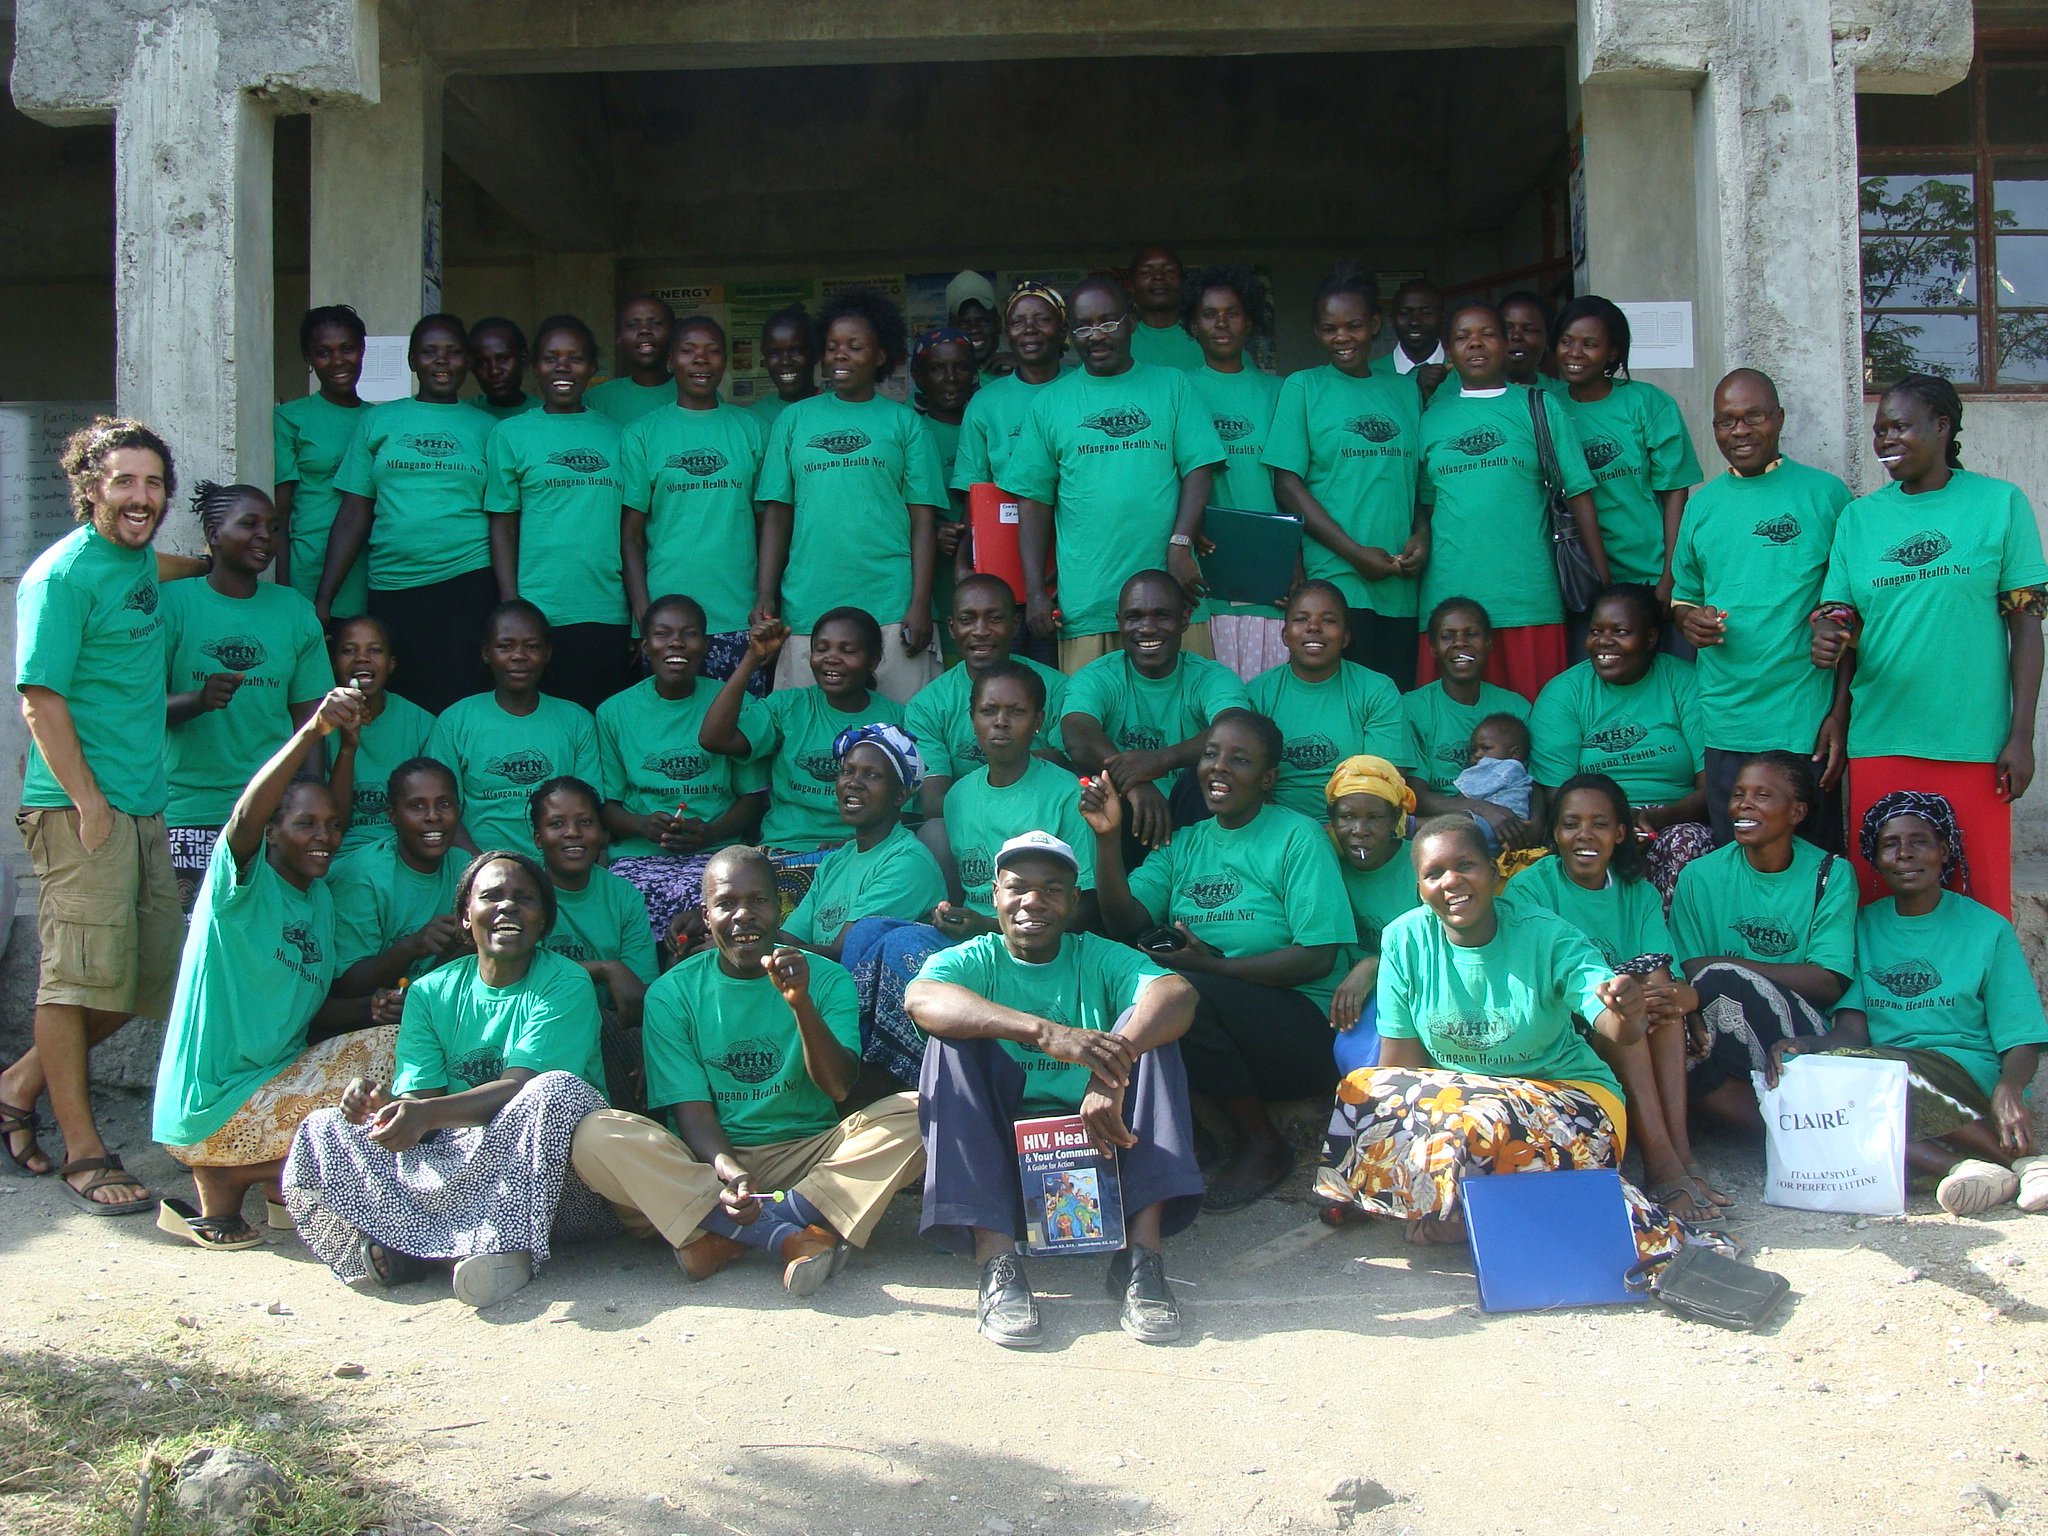 28 Local Community Health Workers Graduate from the MHN Kanyakla Facilitator Training, Feb 2012